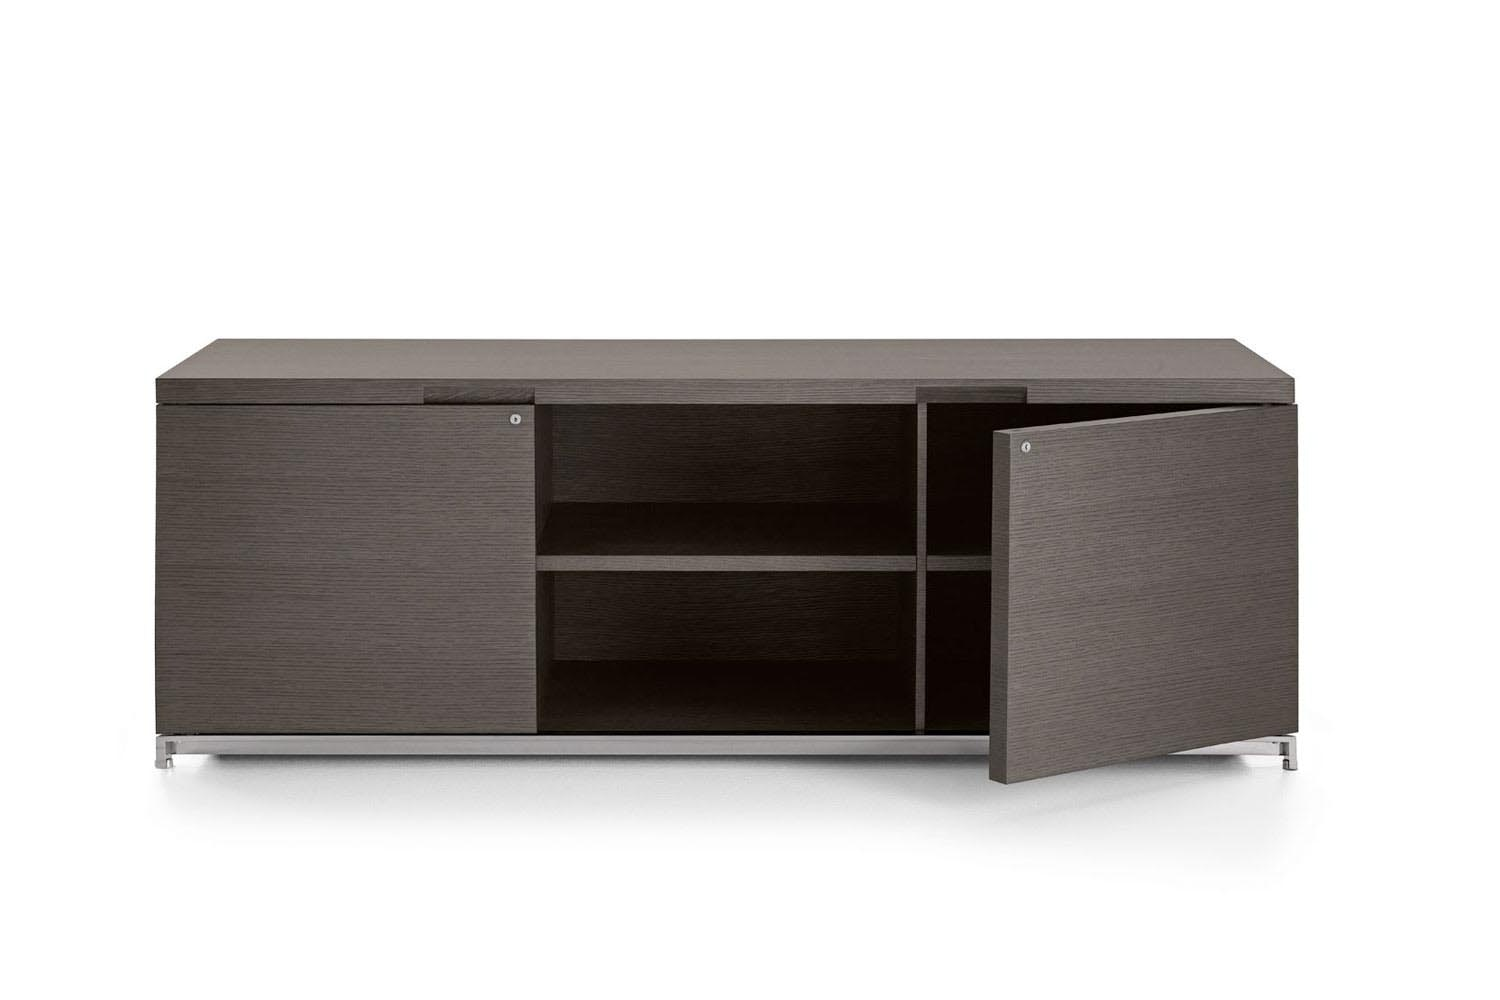 AC Executive - Chests of Drawers and Storage Units by Antonio Citterio for Maxalto